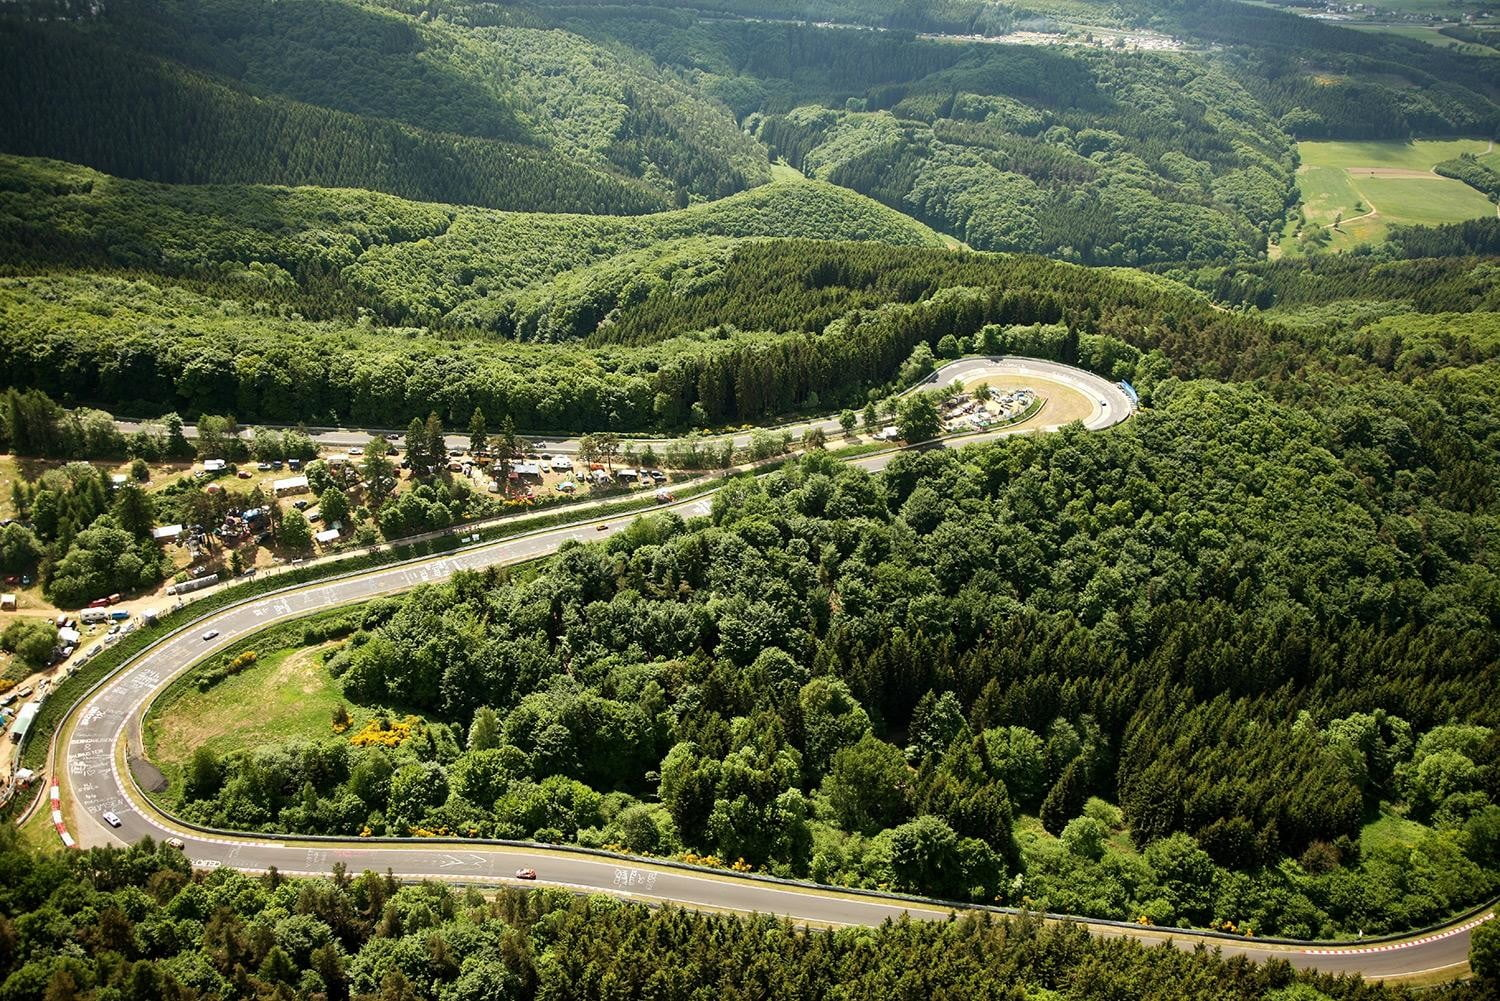 Nurburgring track overview